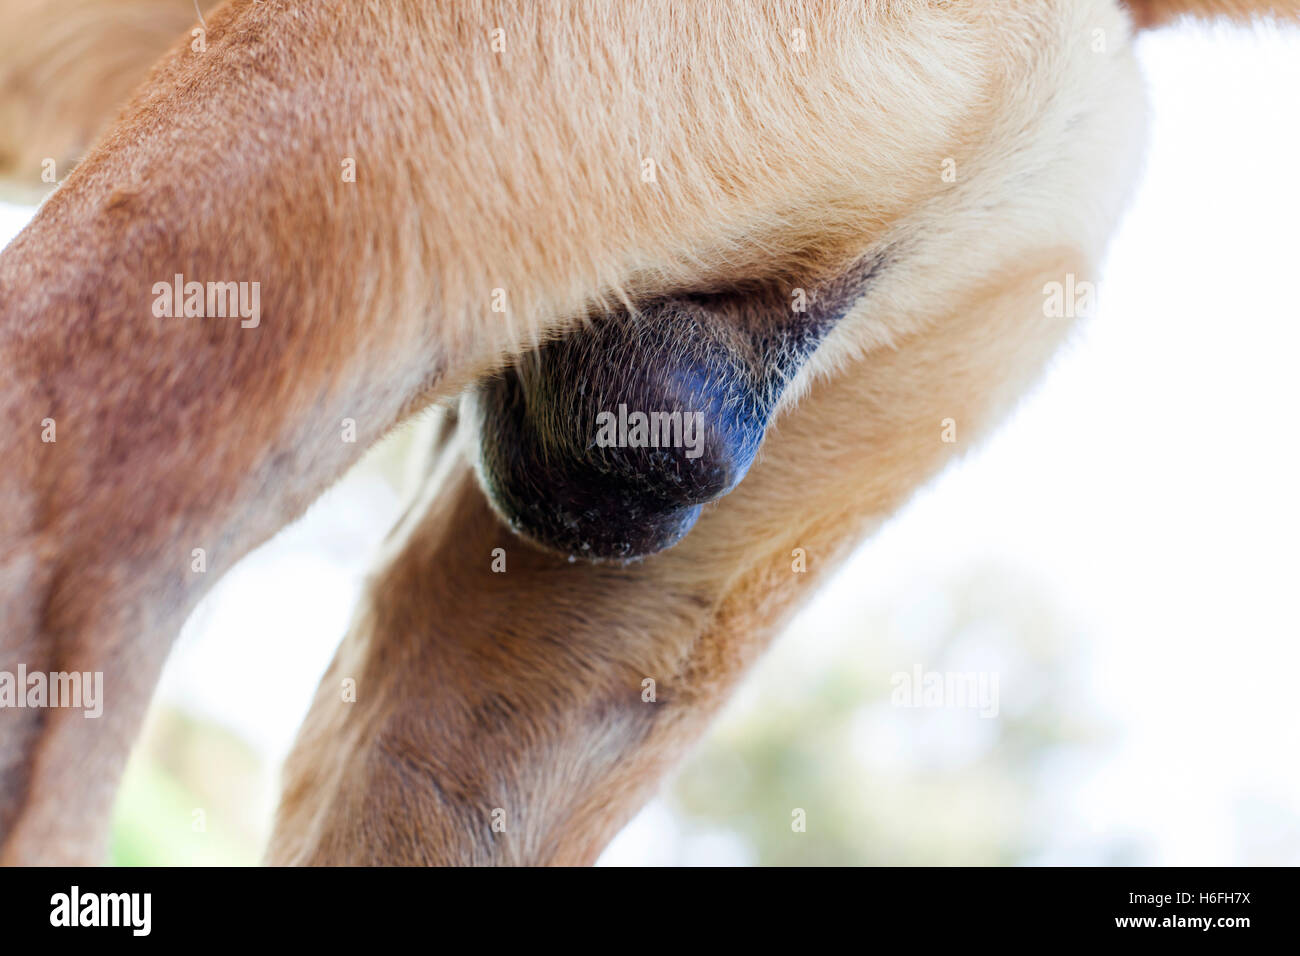 Testicles Stock Photos Testicles Stock Images Alamy